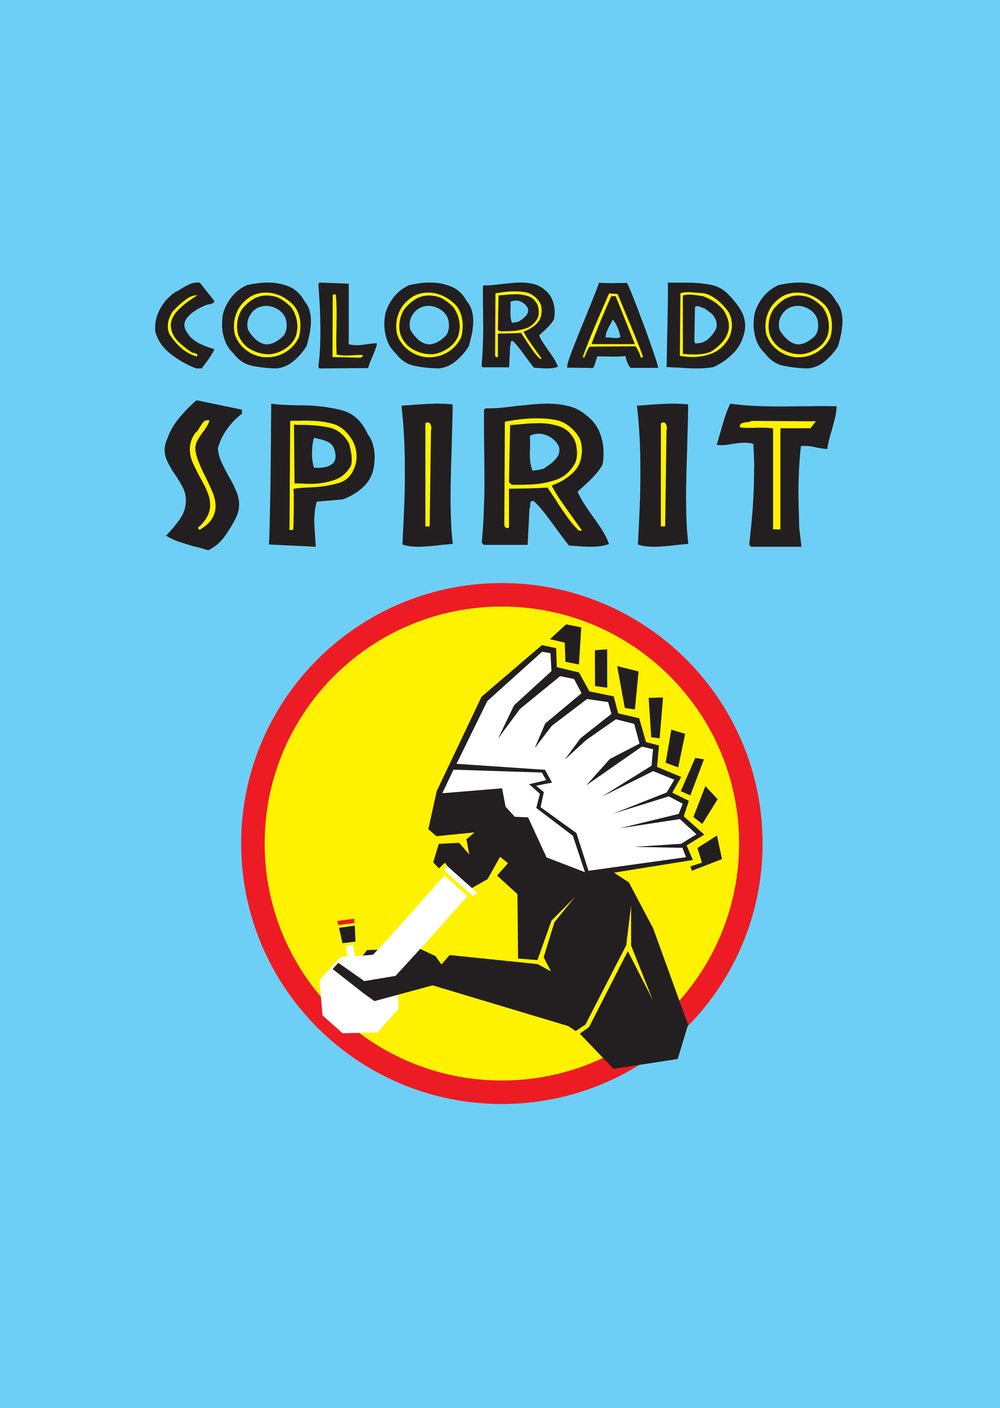 The illustration for the Colorado Spirit shirt, created and screen printed by freelance graphic designer, Adam Jeffers.